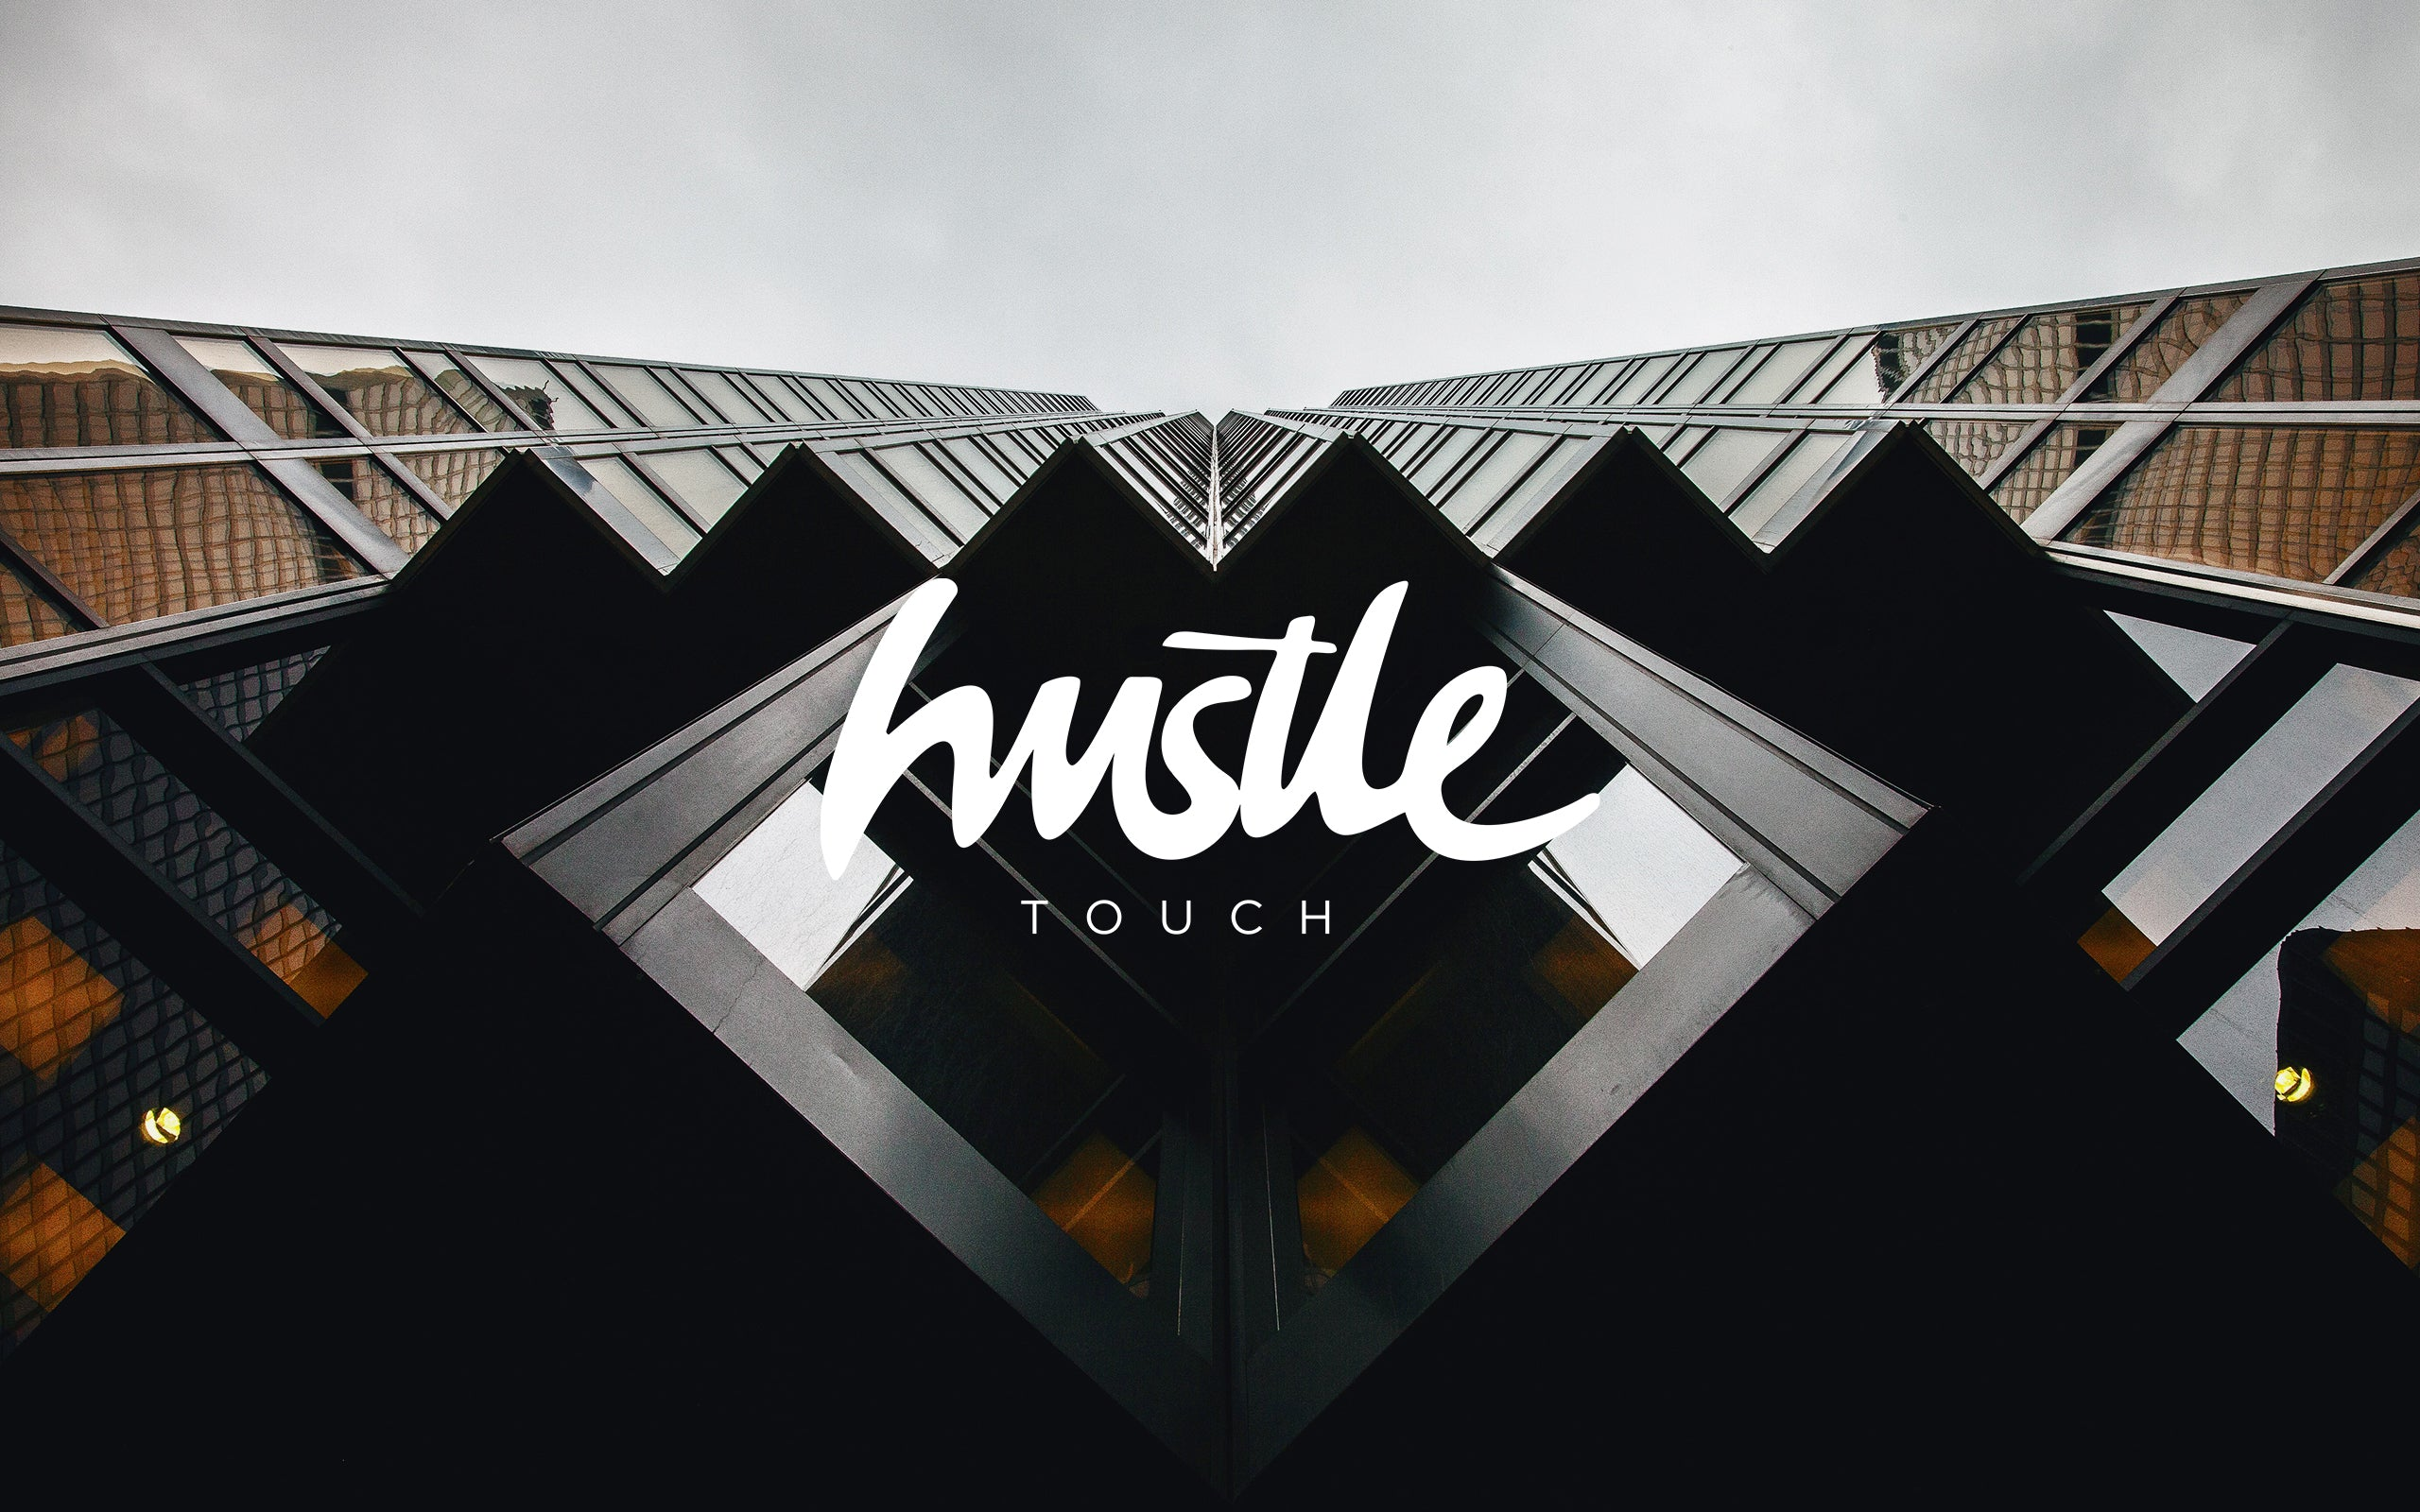 Hustle Touch Wallpaper 015 - Hustle Touch